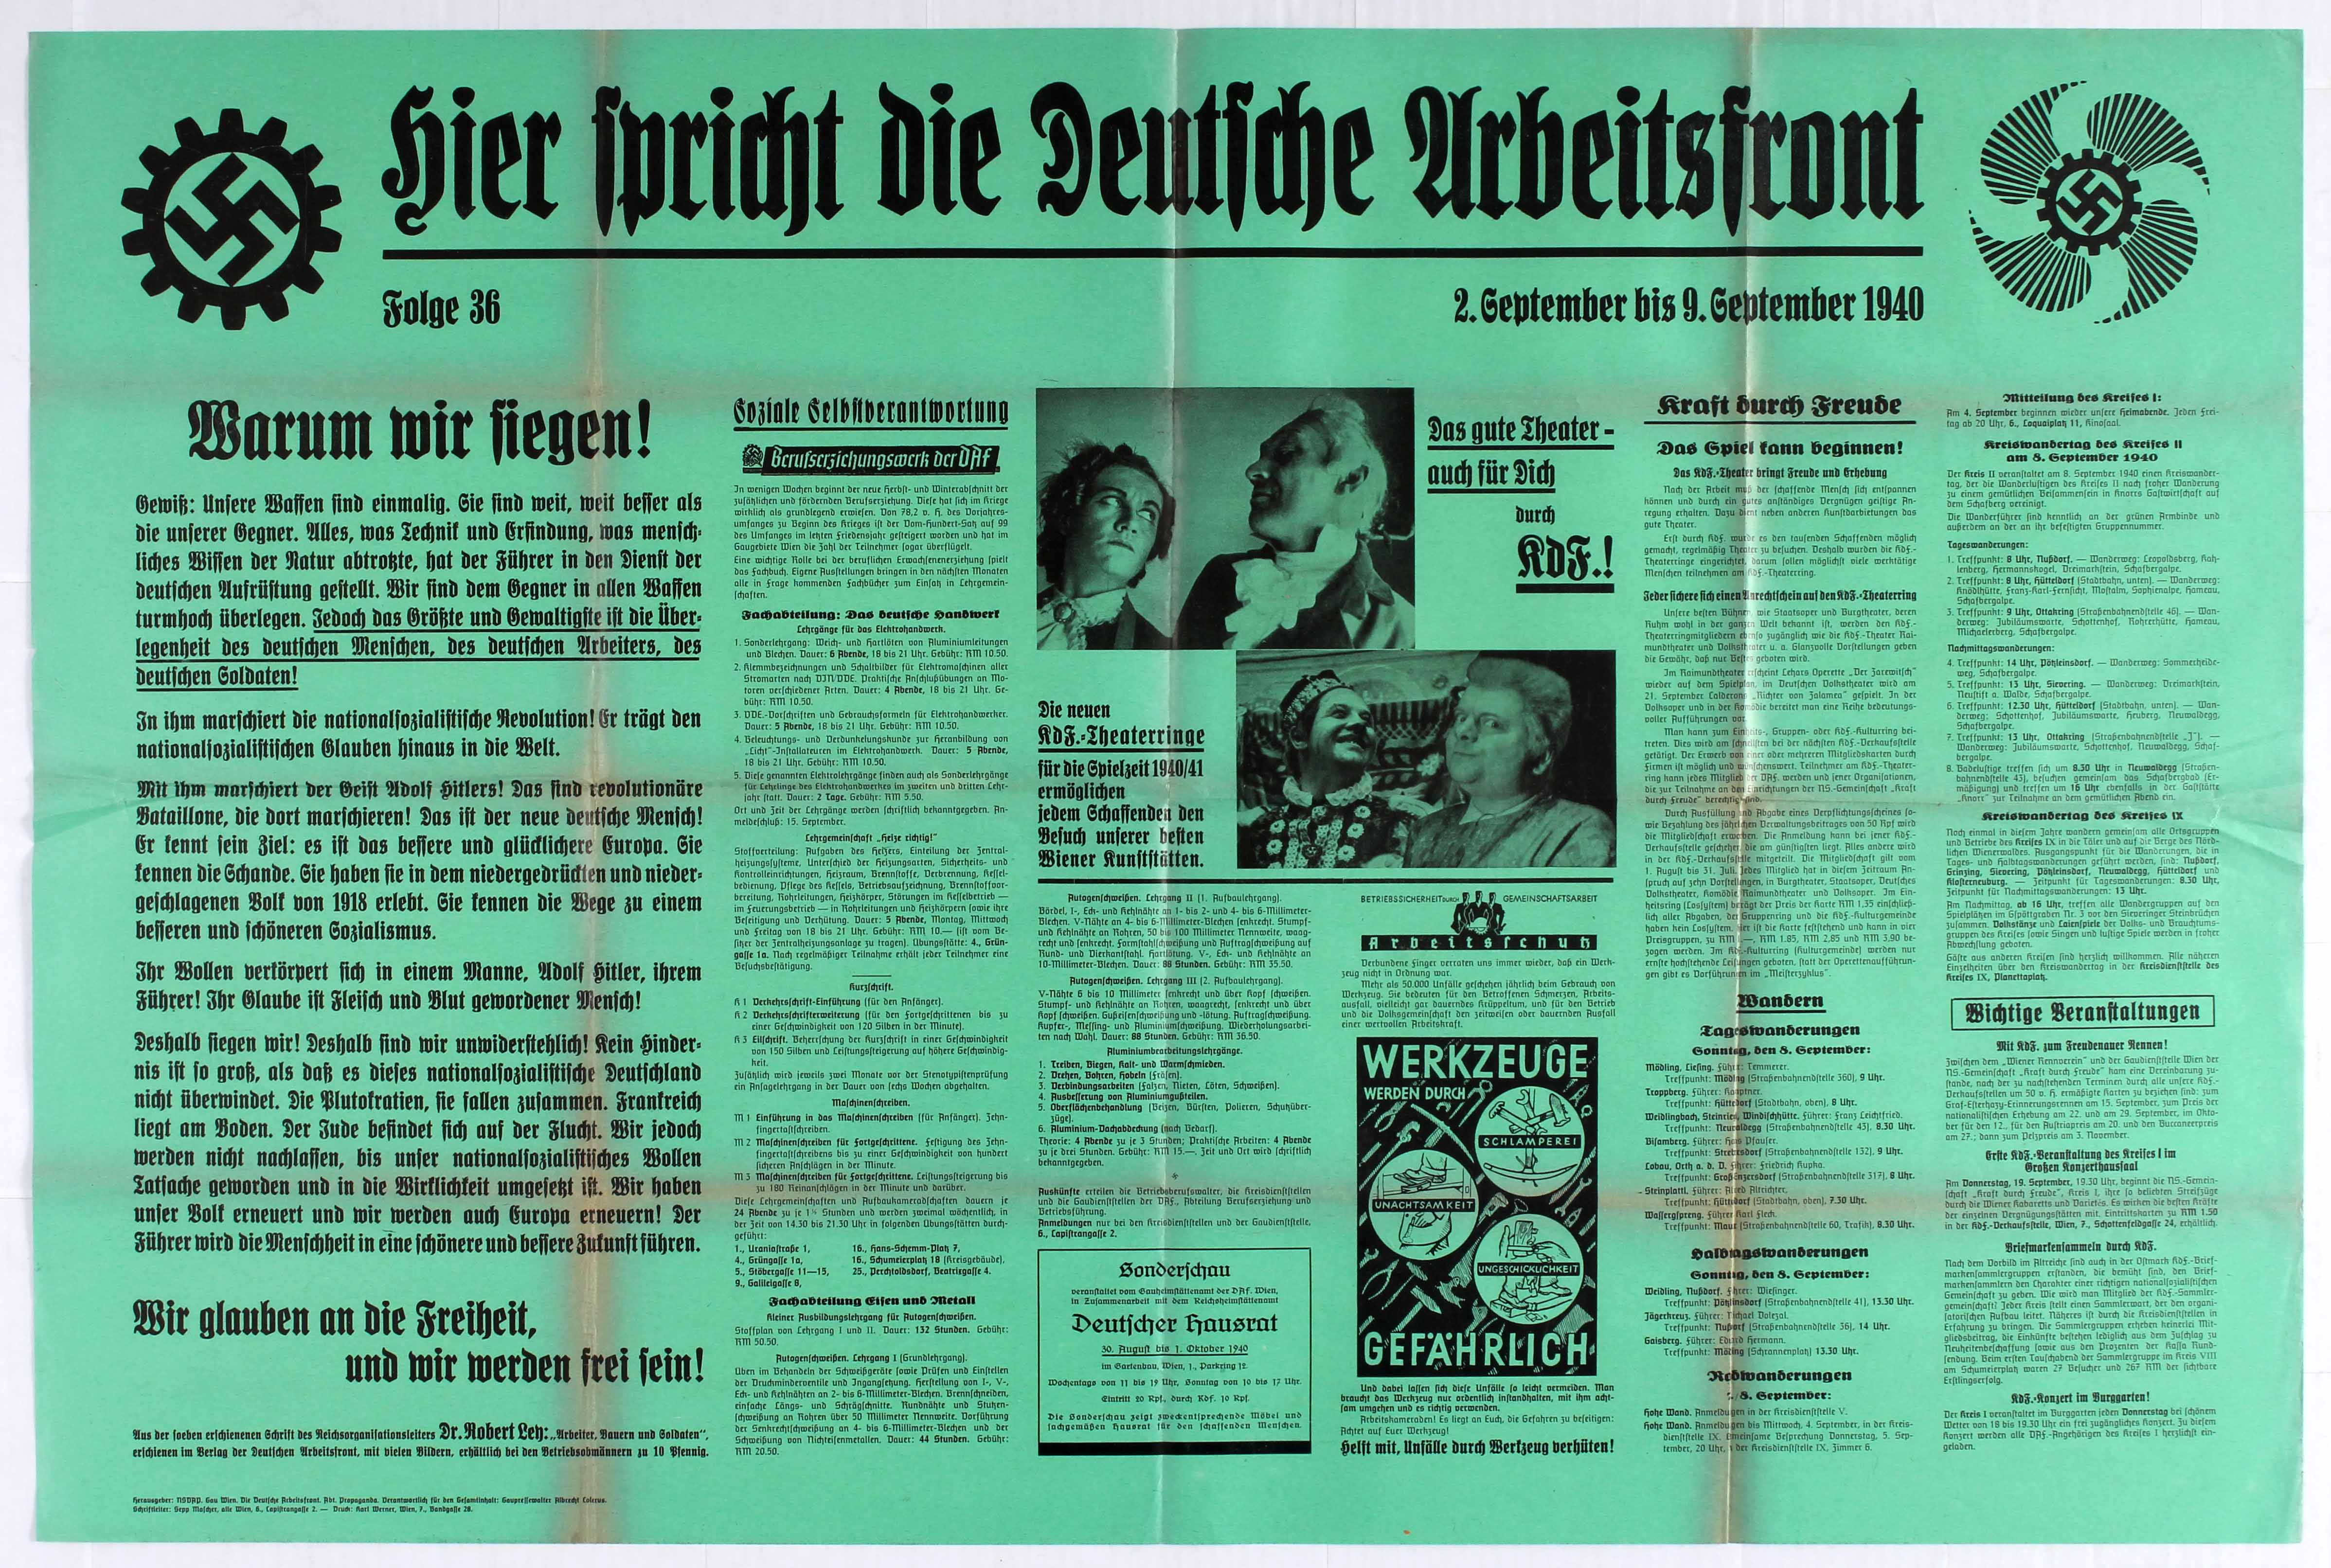 Lot 4401 - Nazi Propaganda poster - The Voice of the German Labour Front - Wall Newspaper - Episode 36